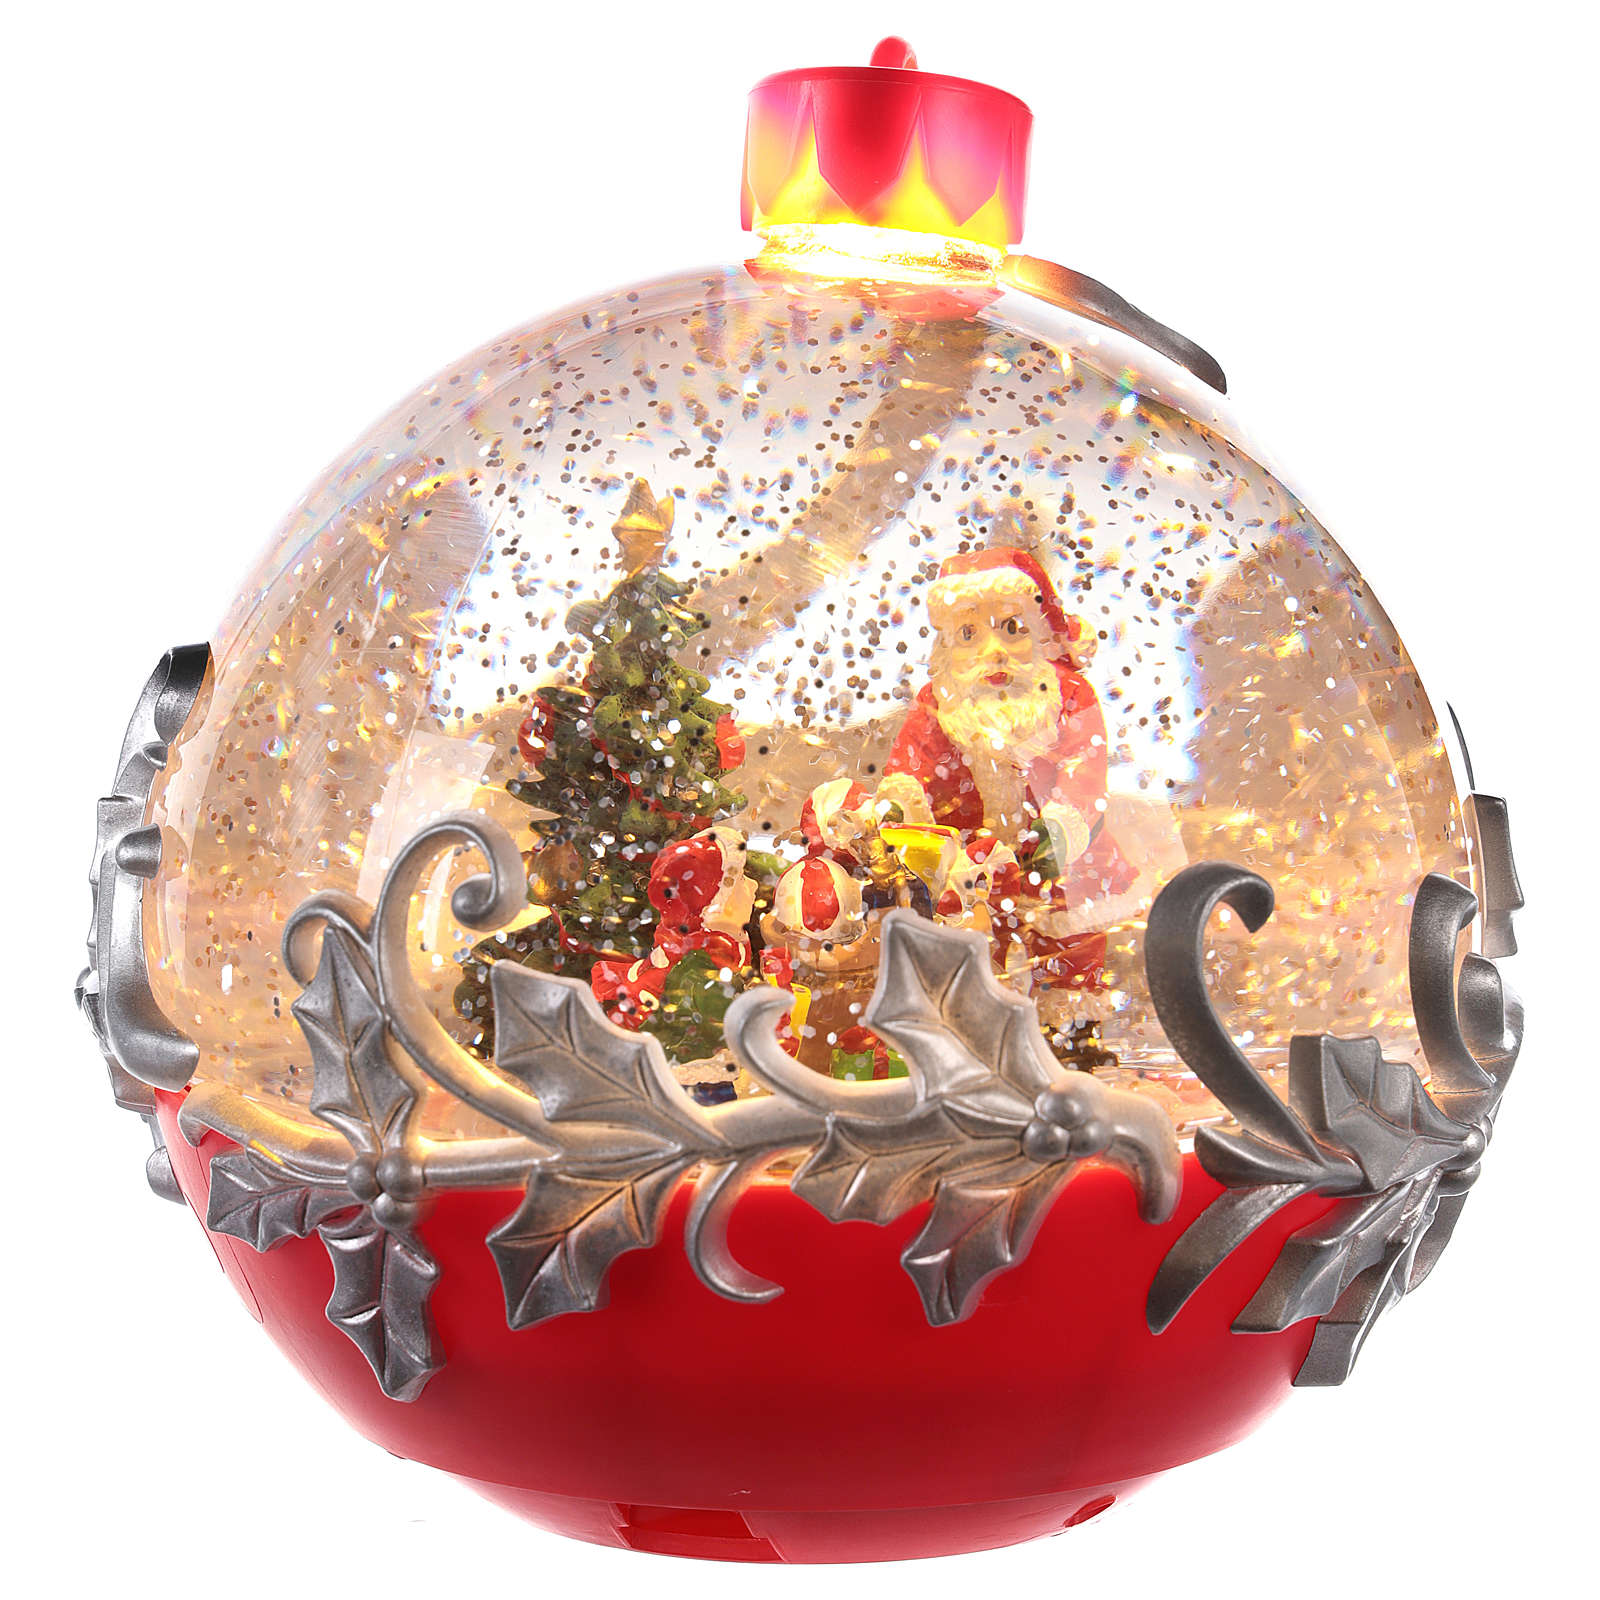 Glass ball with Santa Claus on a sled 15x15 cm 3